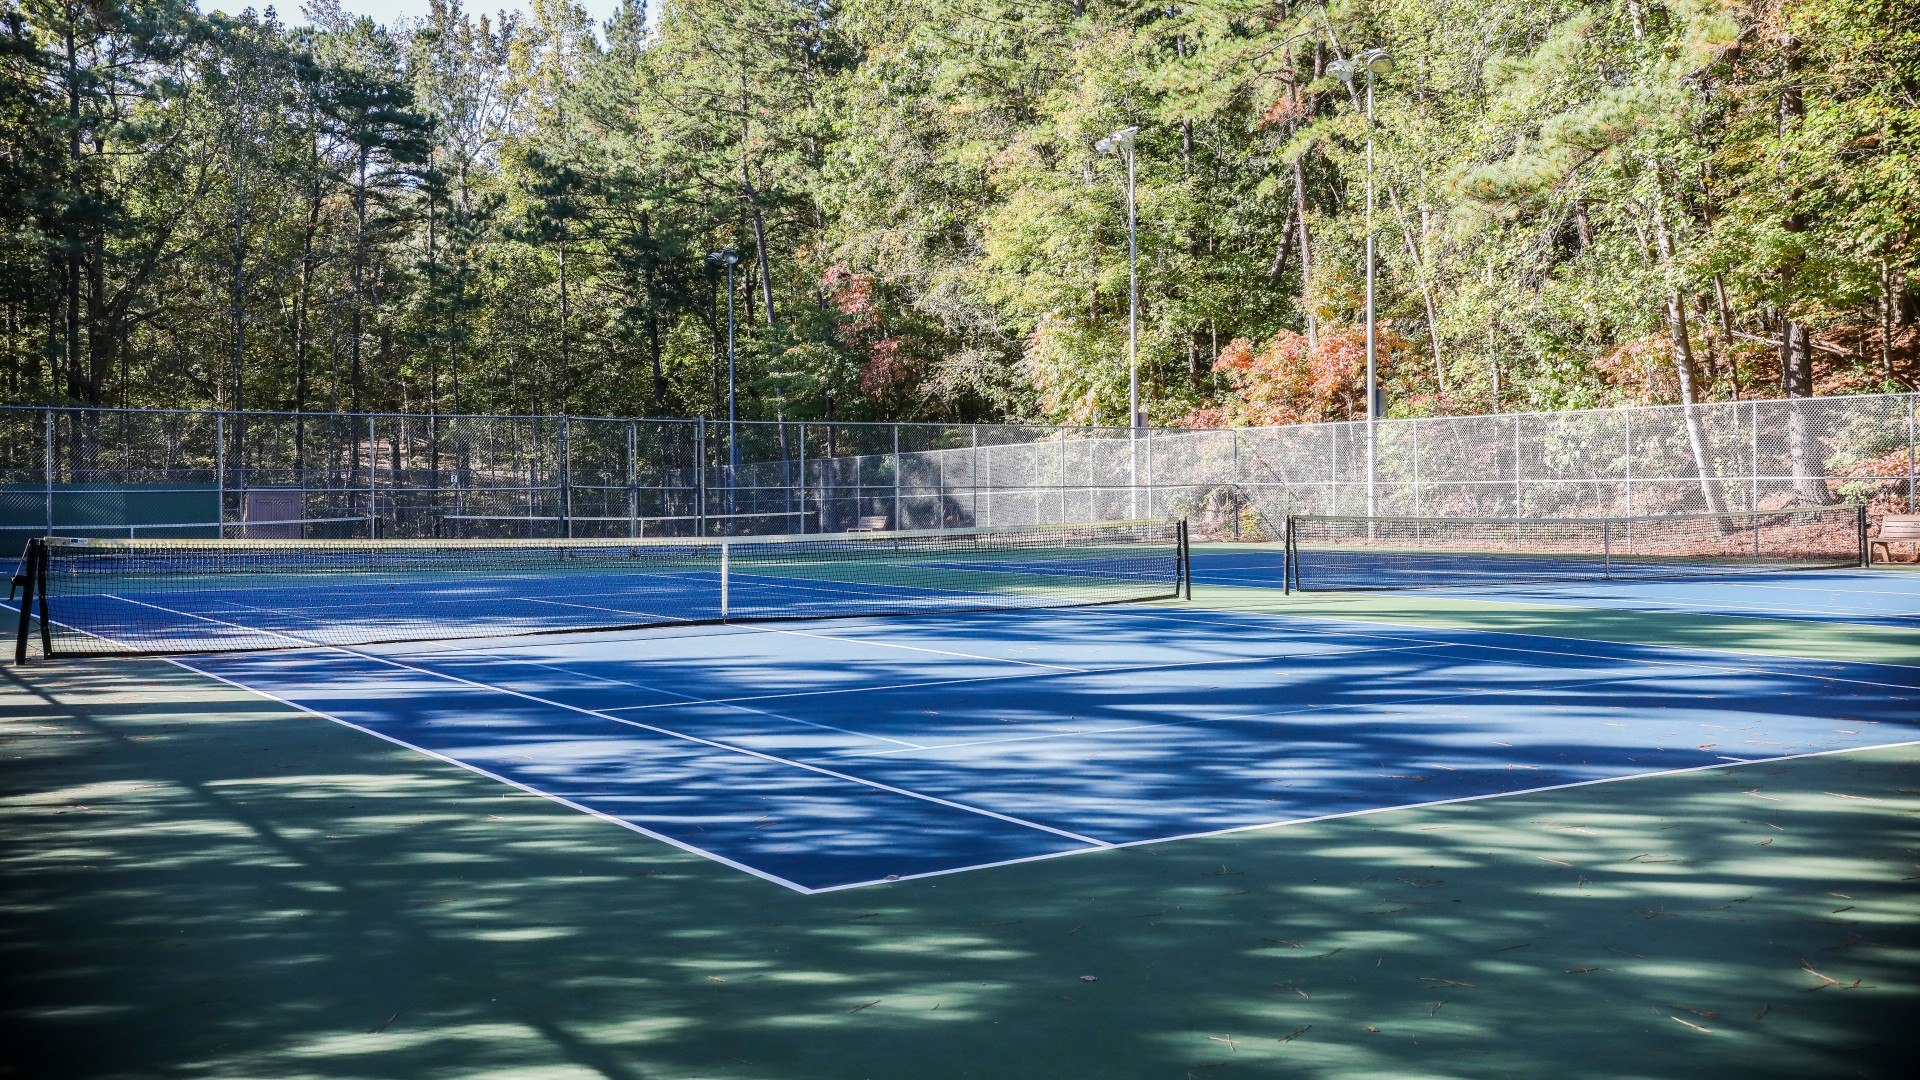 Several tennis courts at Kentwood Park